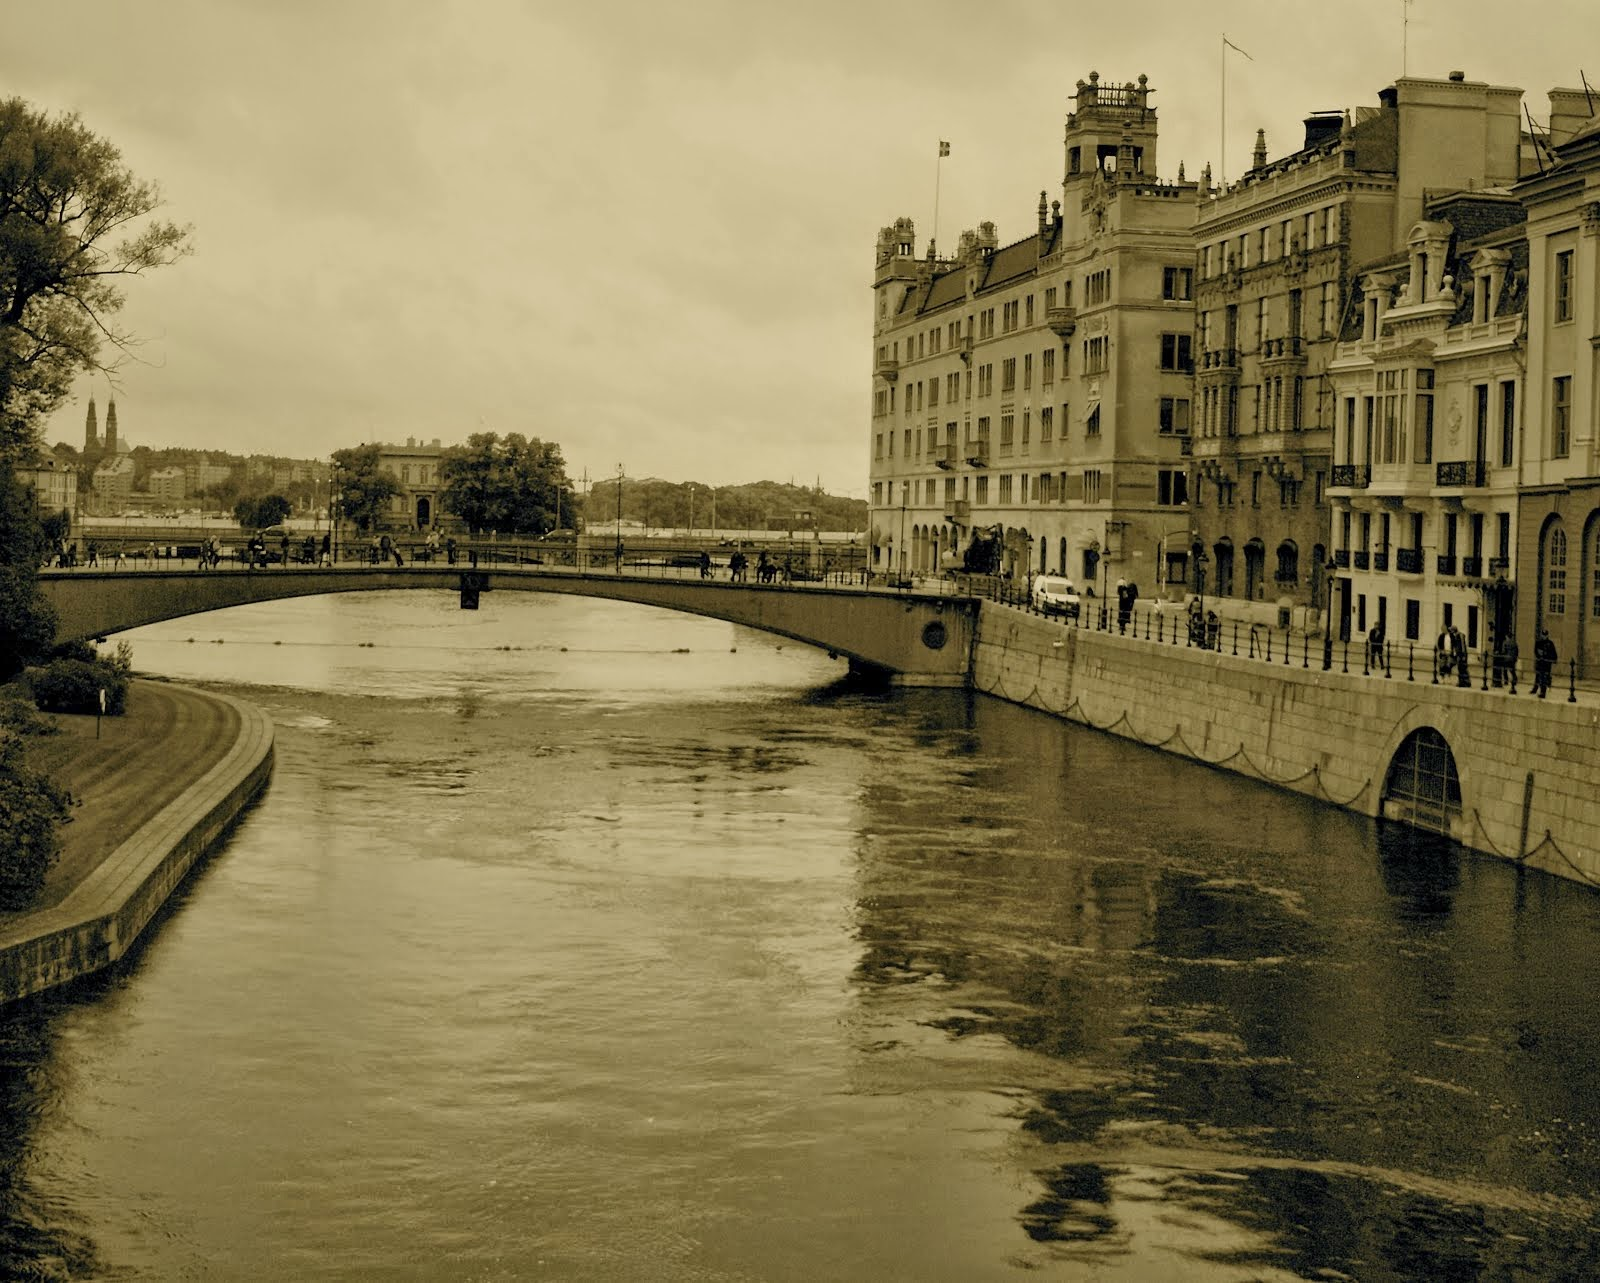 City of Bridges, City of Canals